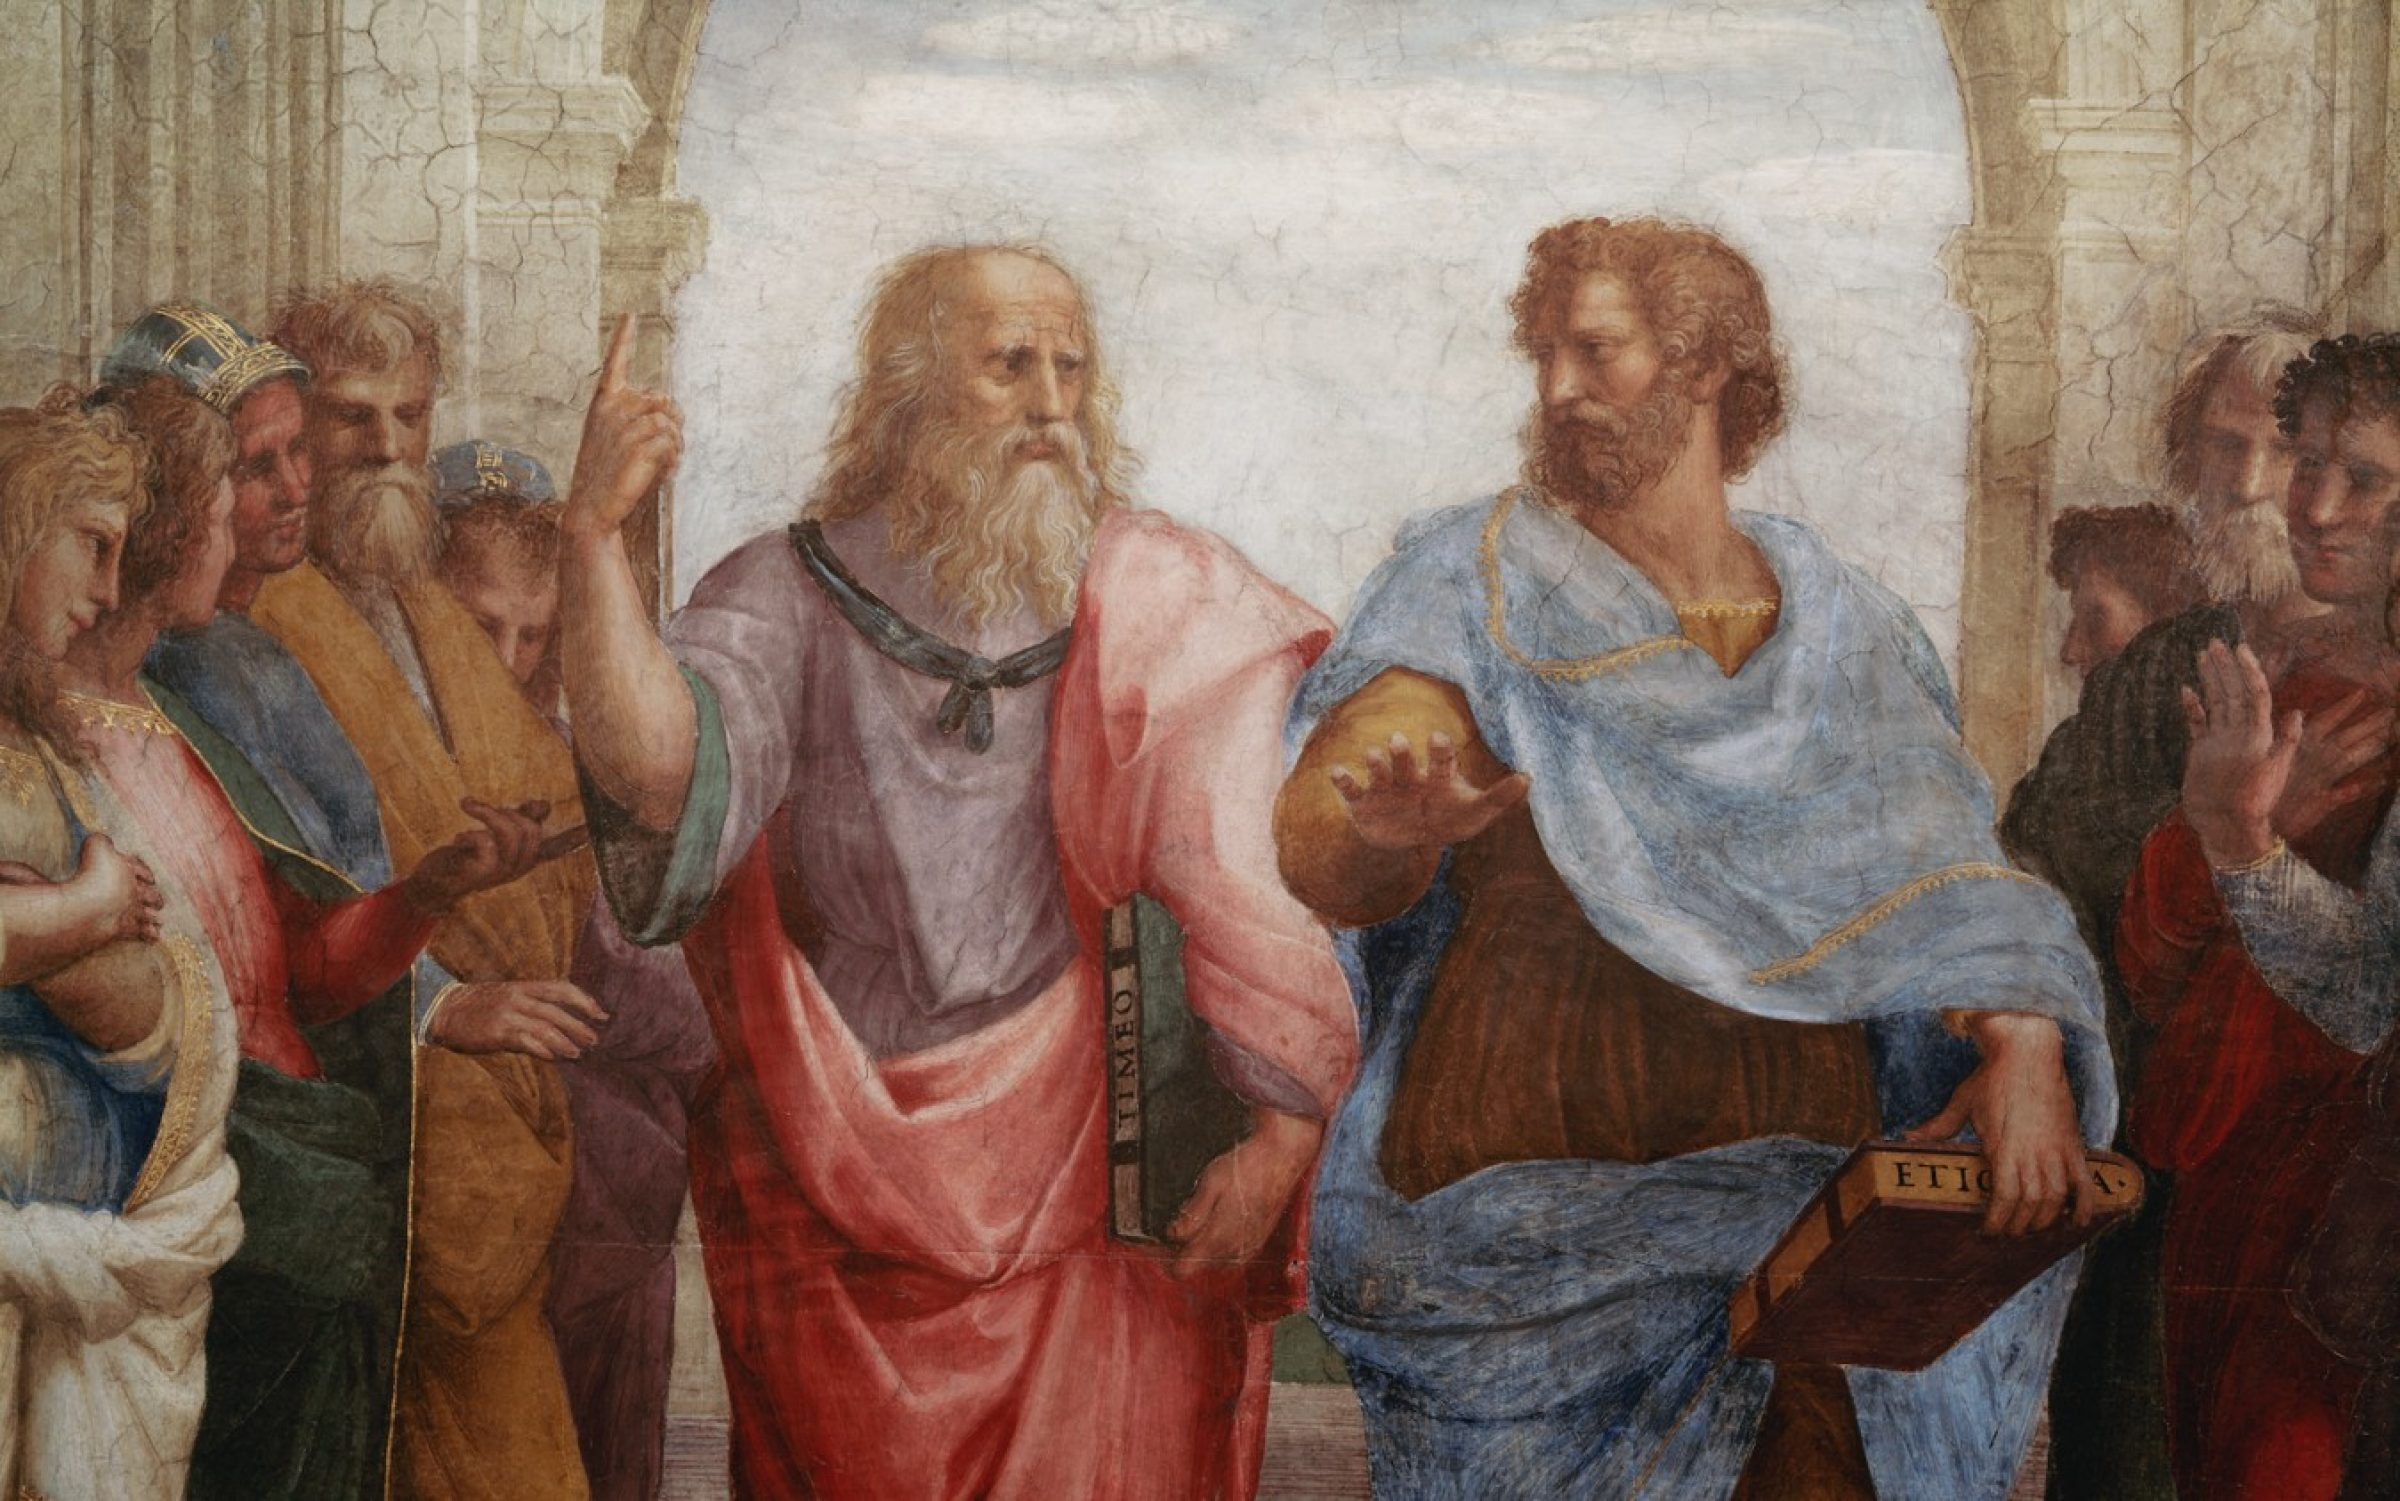 Detail of Plato and Aristotle in 'The School of Athens' by Raphael. Credit: Ted Speigel / Corbis / Getty Images.